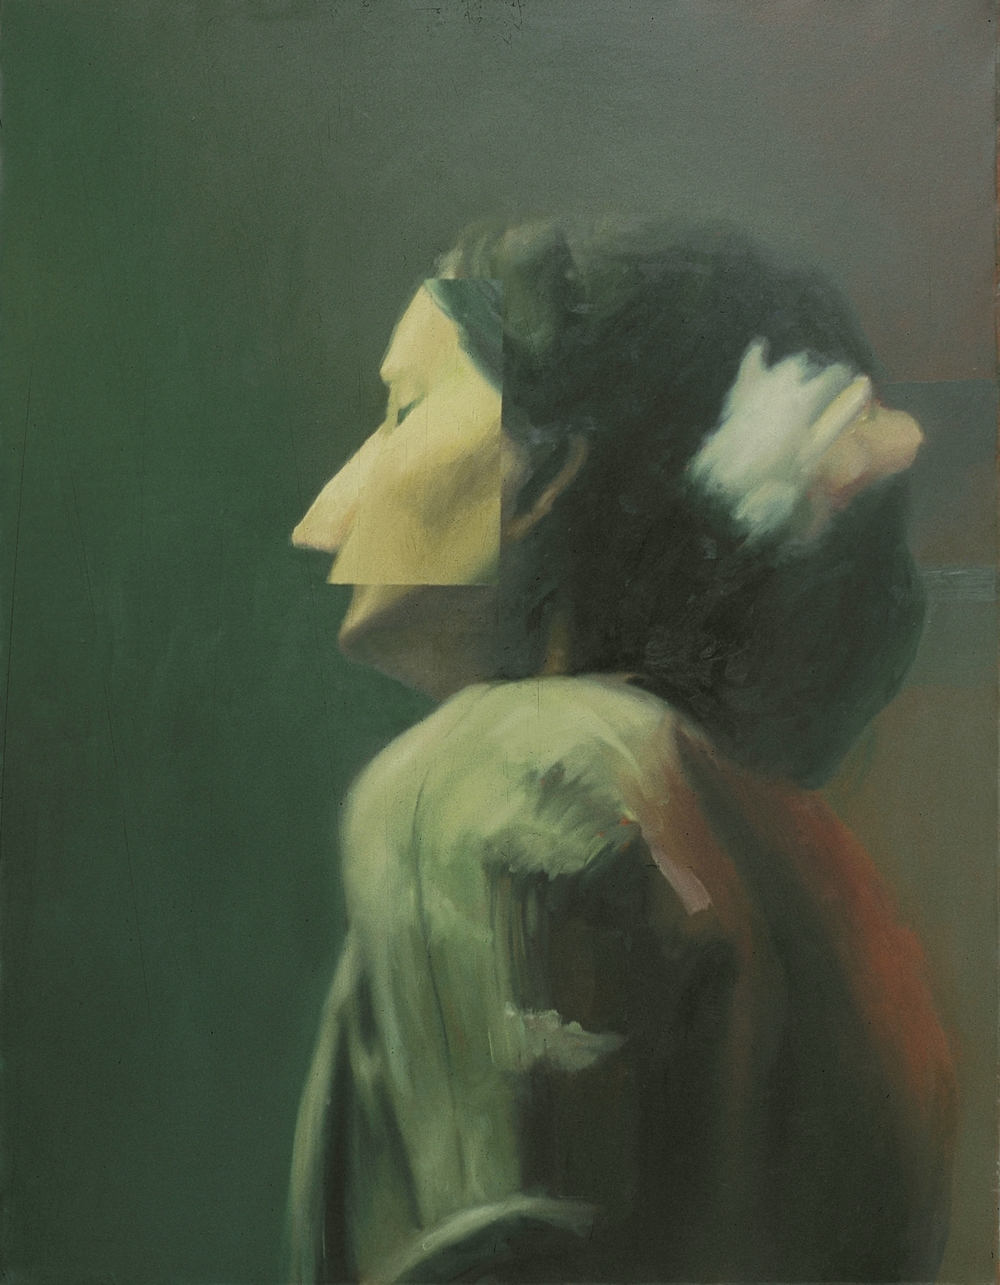 LALA , 1999, oil on canvas, 120 x 80cm. Private collection, France